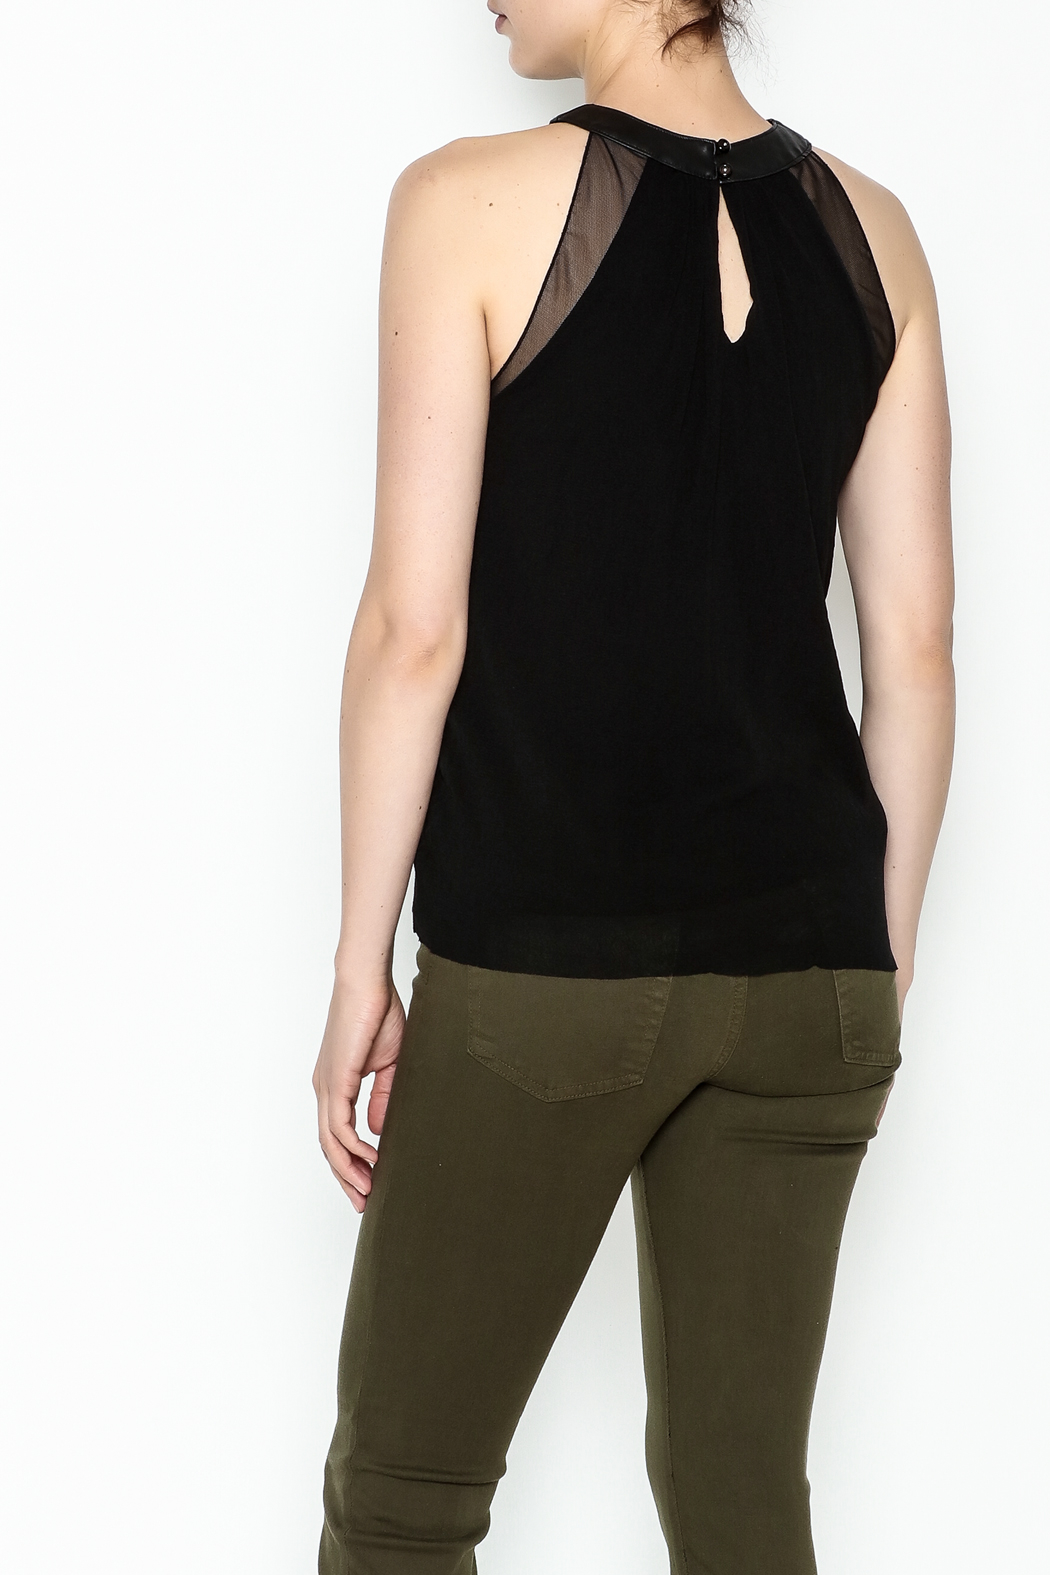 Weston Black Milan Top - Back Cropped Image